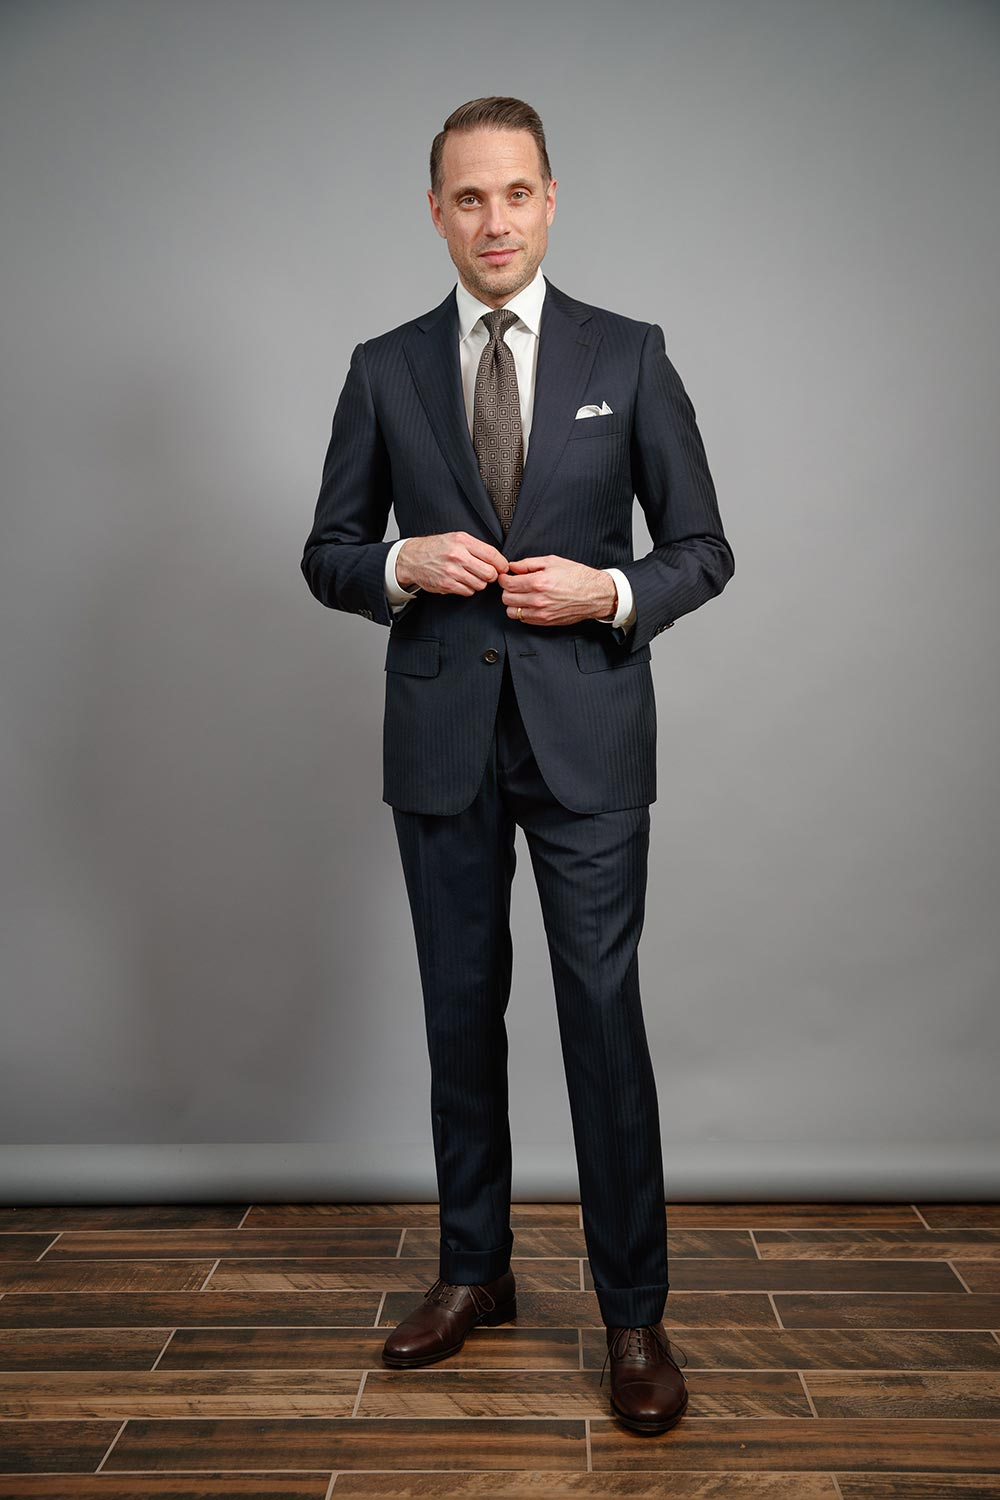 essential-white-poplin-dress-shirt-thomas-mason-navy-herringbone-suit-brown-oxford-shoes-brown-tie